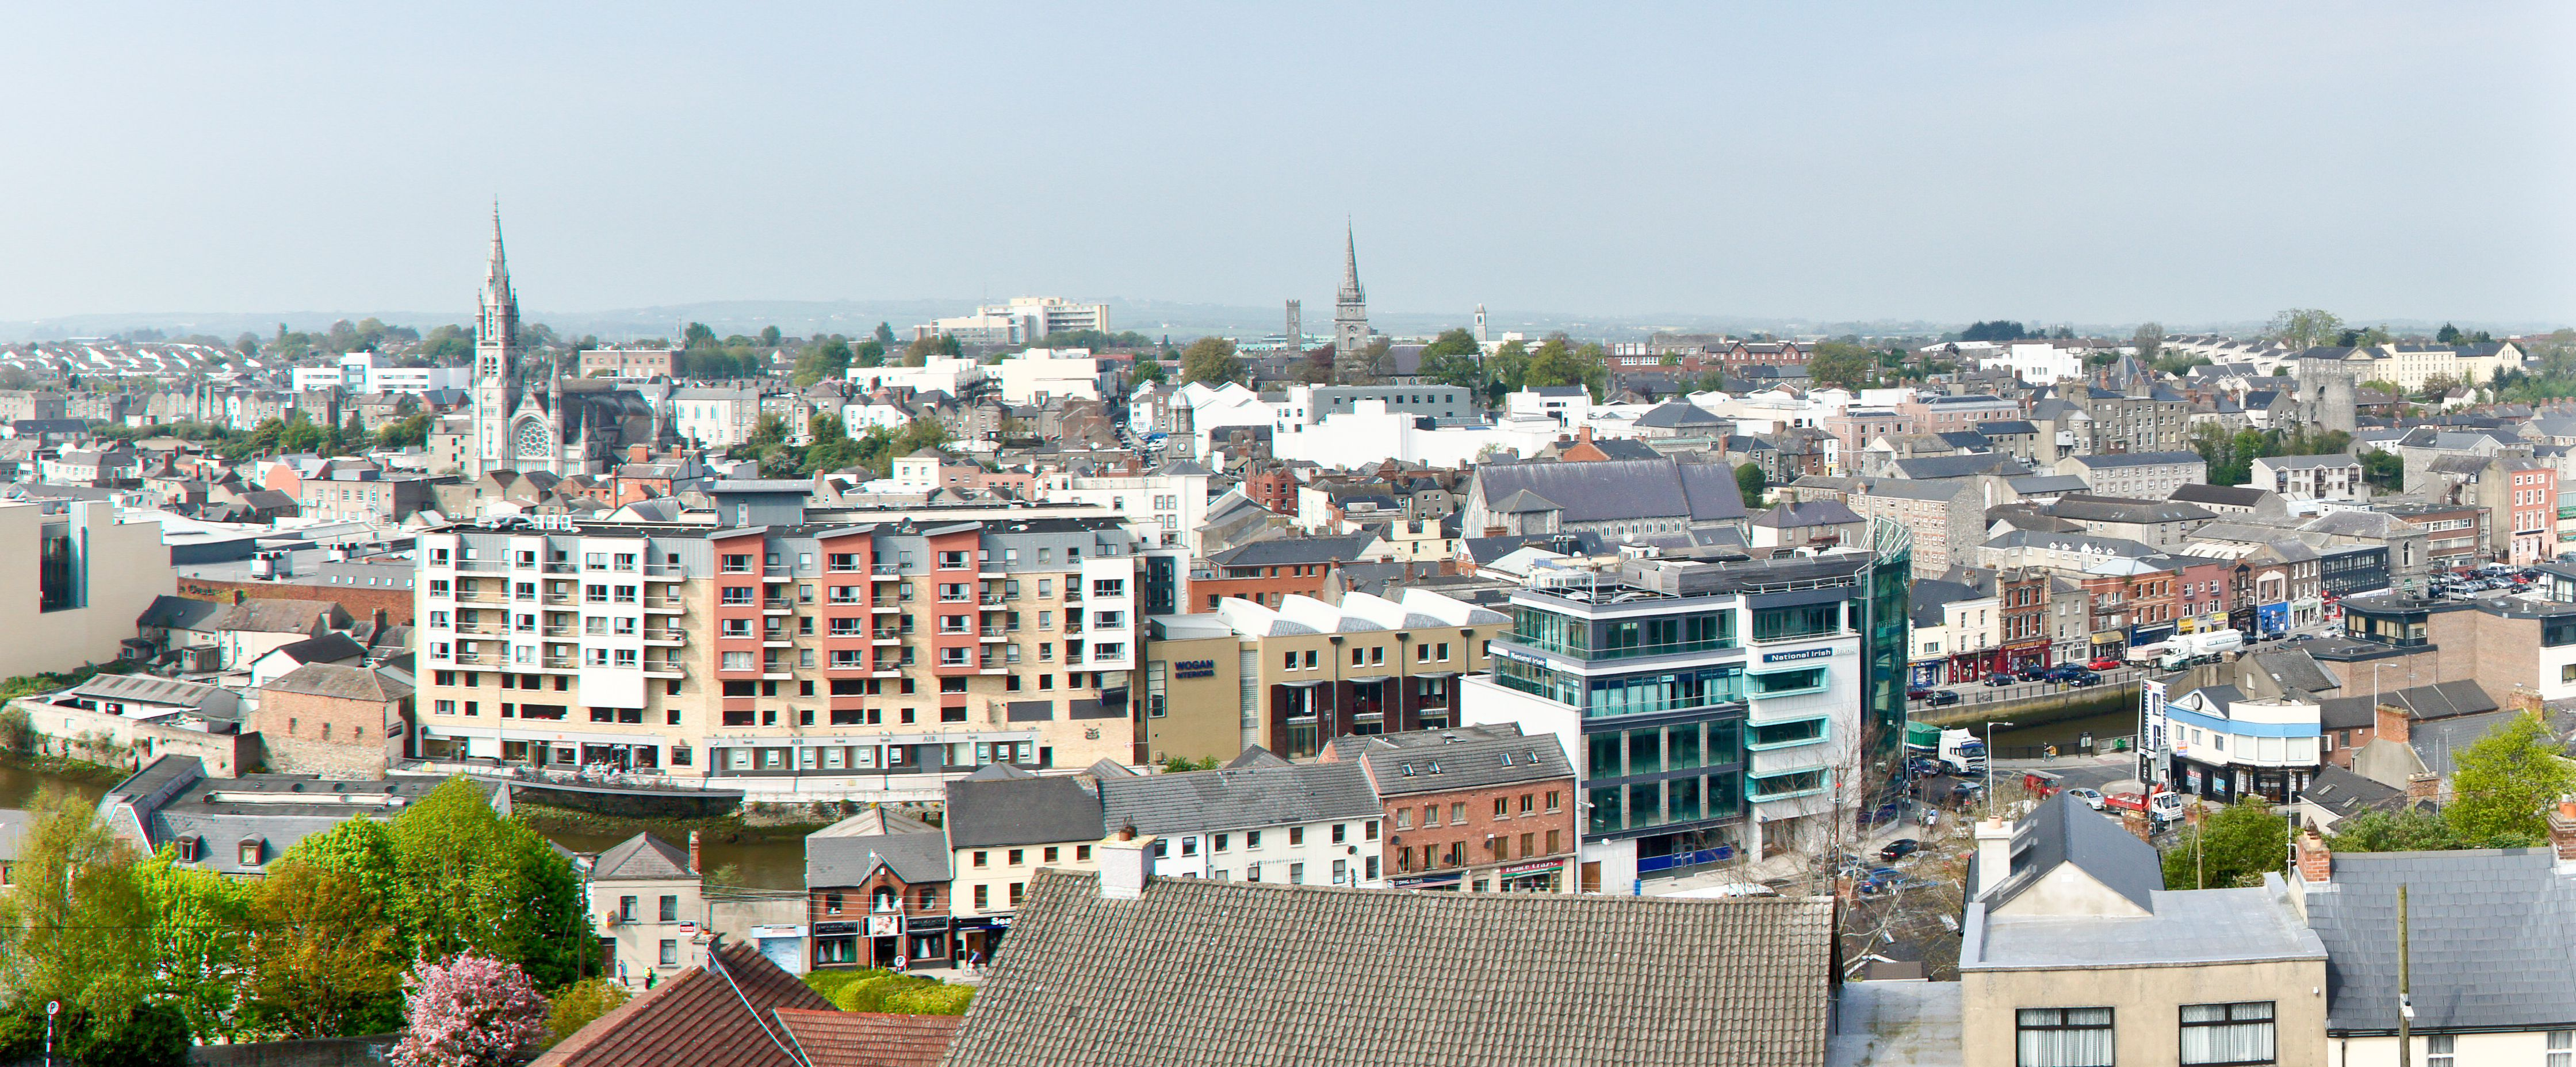 View of Drogheda Ireland from the Martello tower